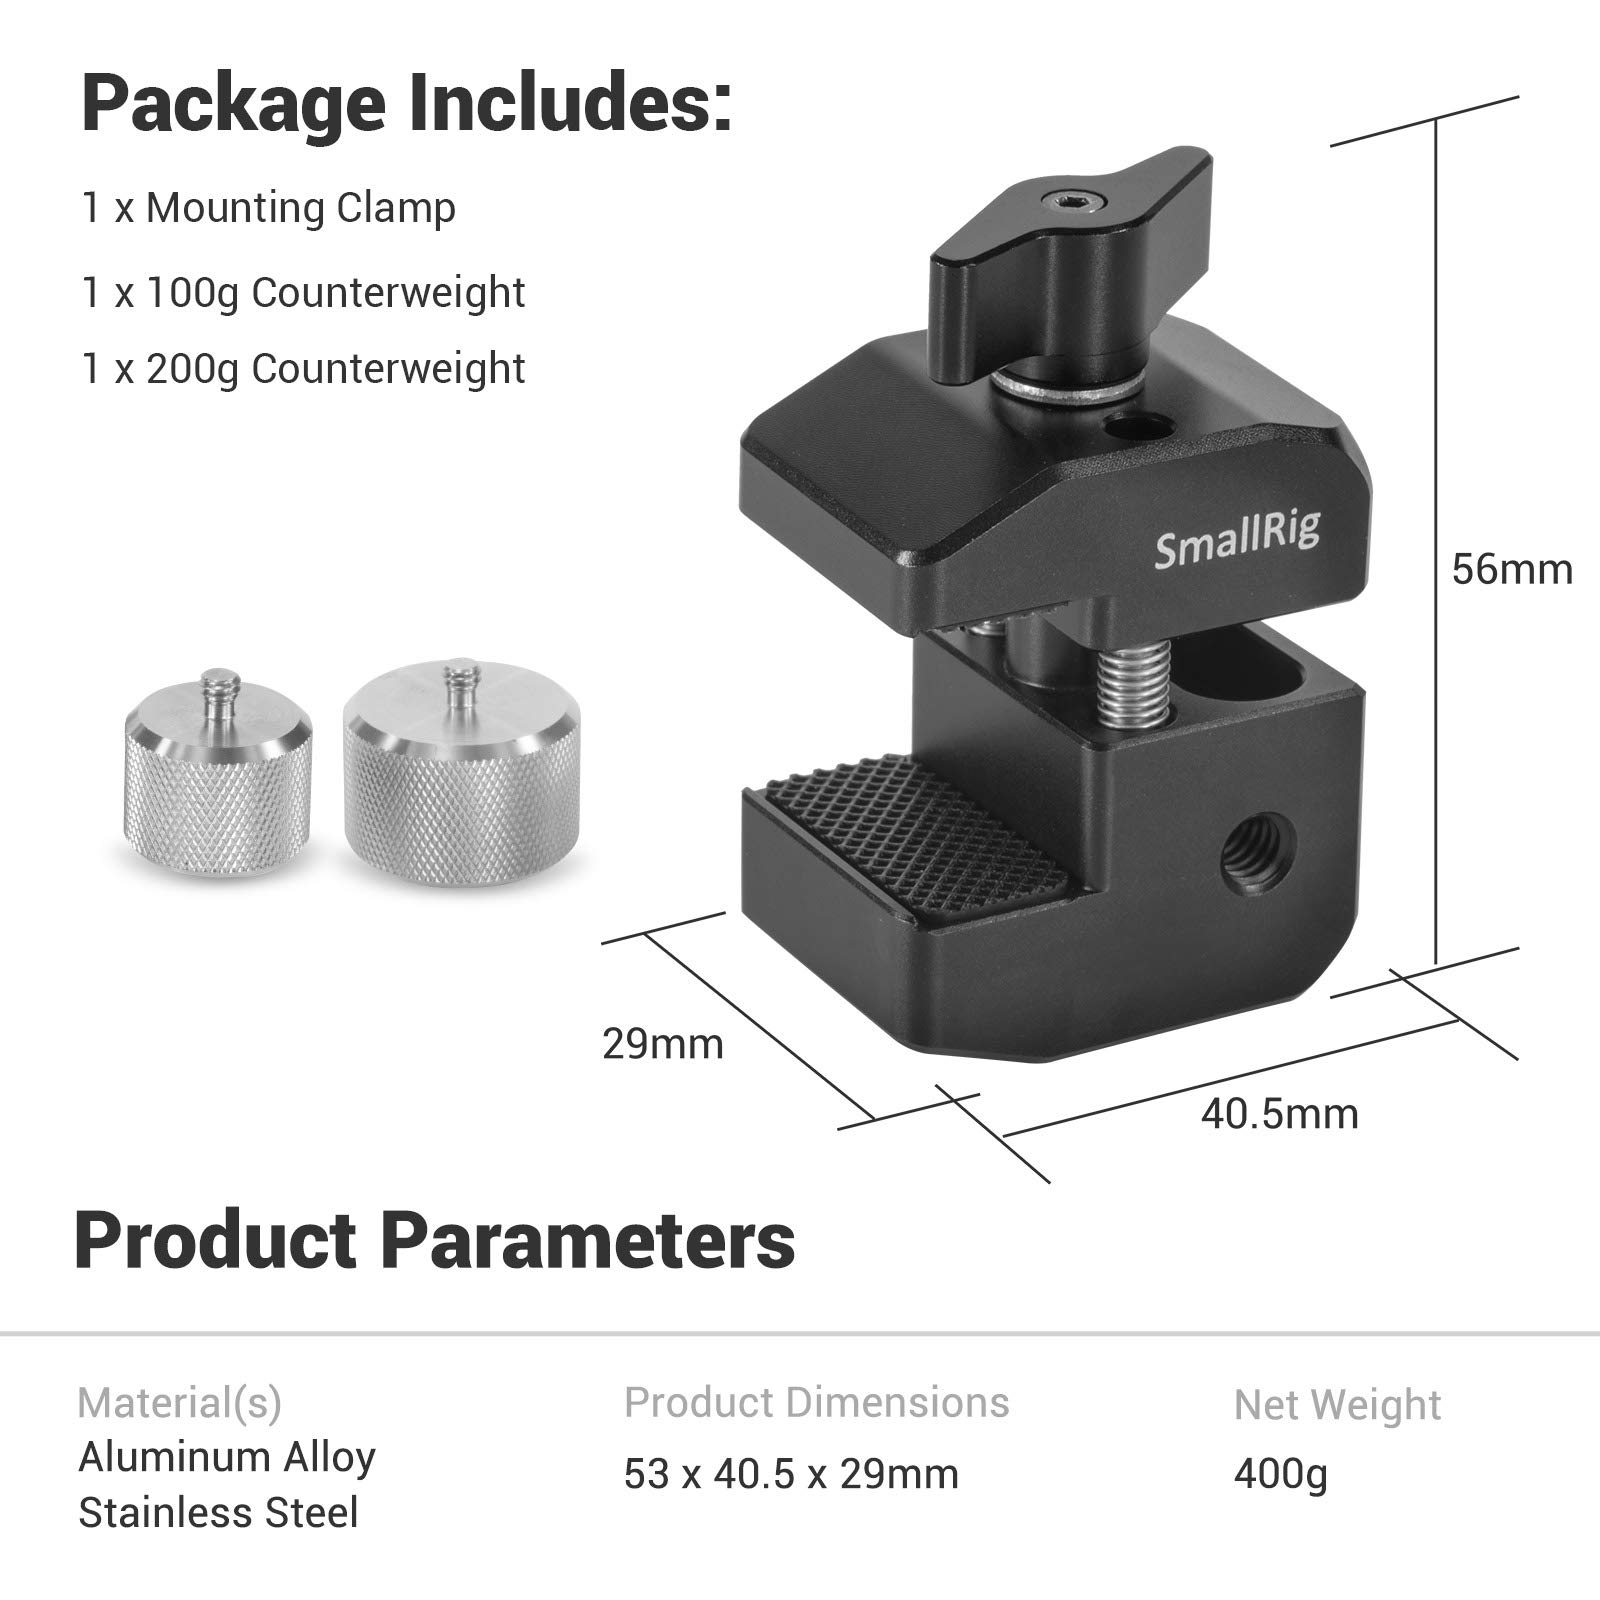 BSS2274 Upgrate Counterweight /& Mounting Clamp Kit for DJI Ronin-S//Ronin-SC and Weebill//Crane Series Gimbals BSS2465 SMALLRIG